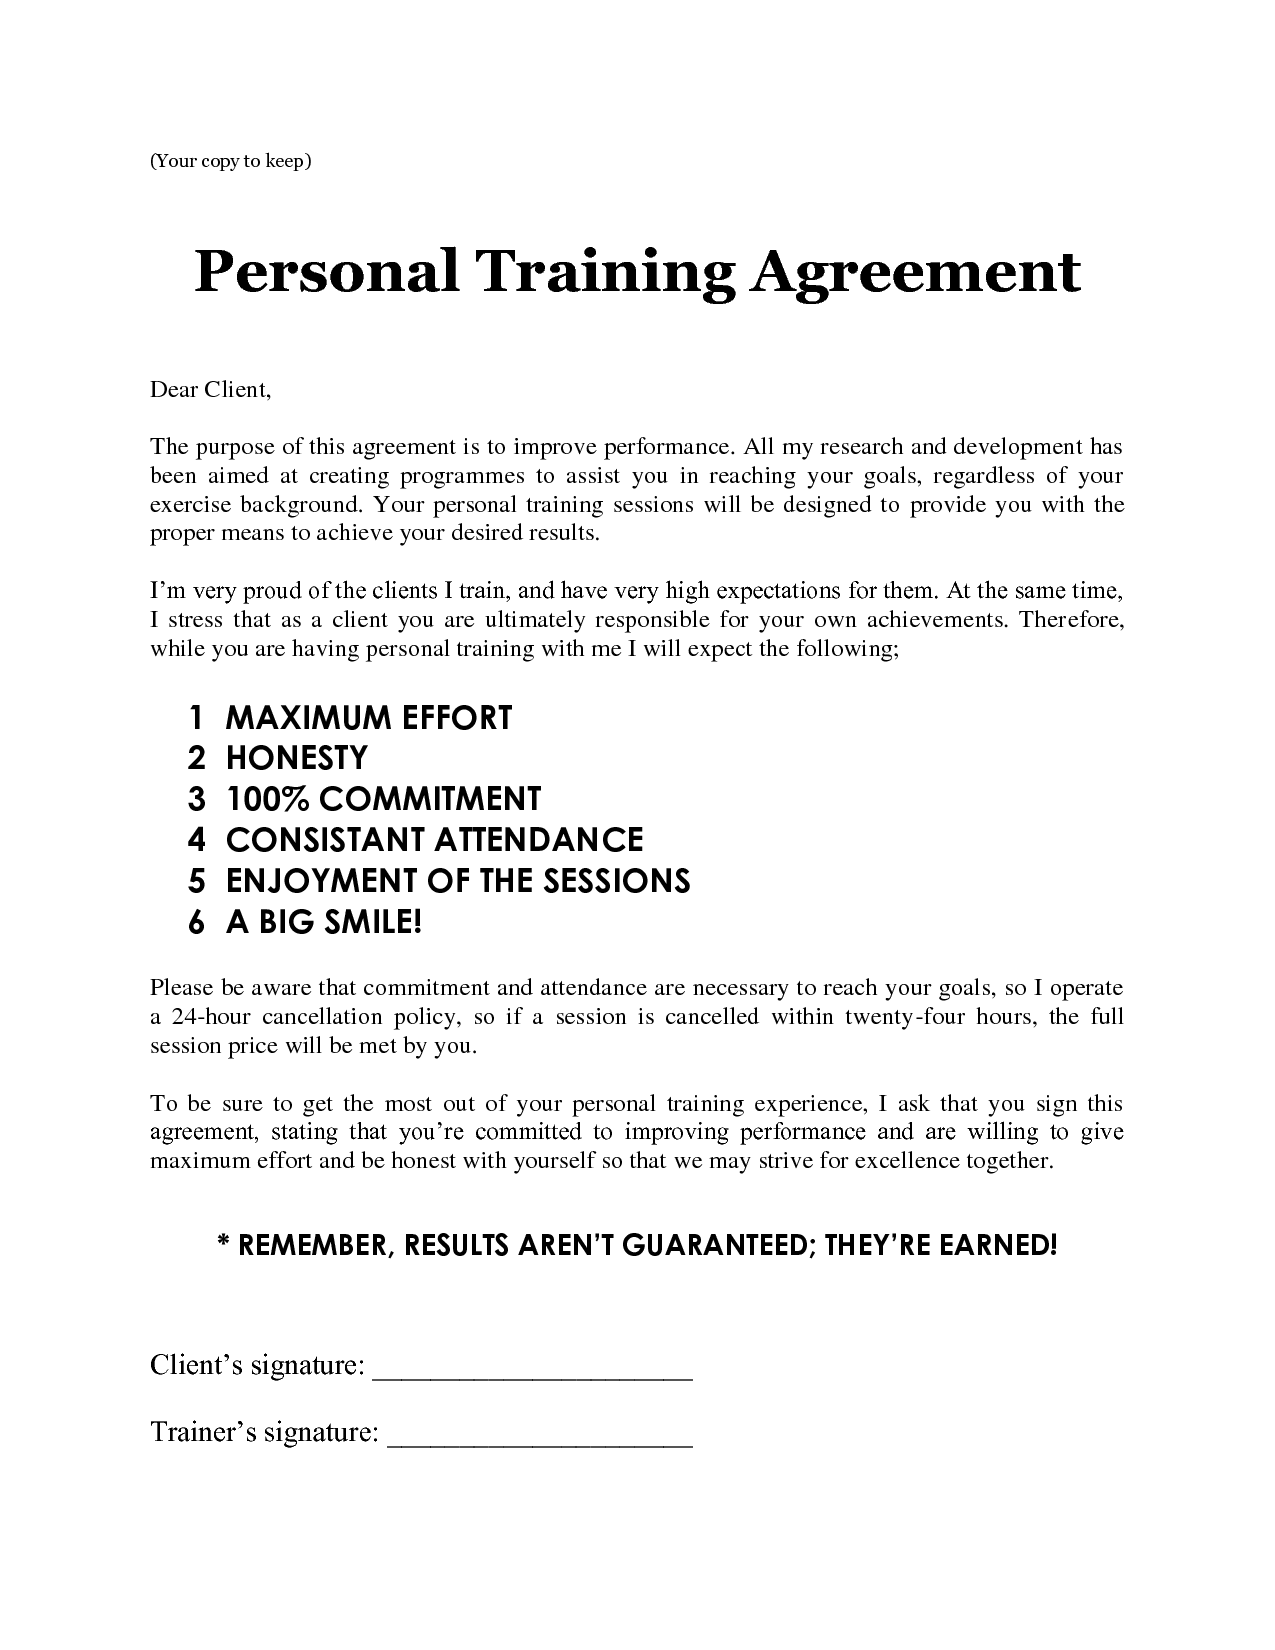 Personal Training Sheets Personal Training Agreement